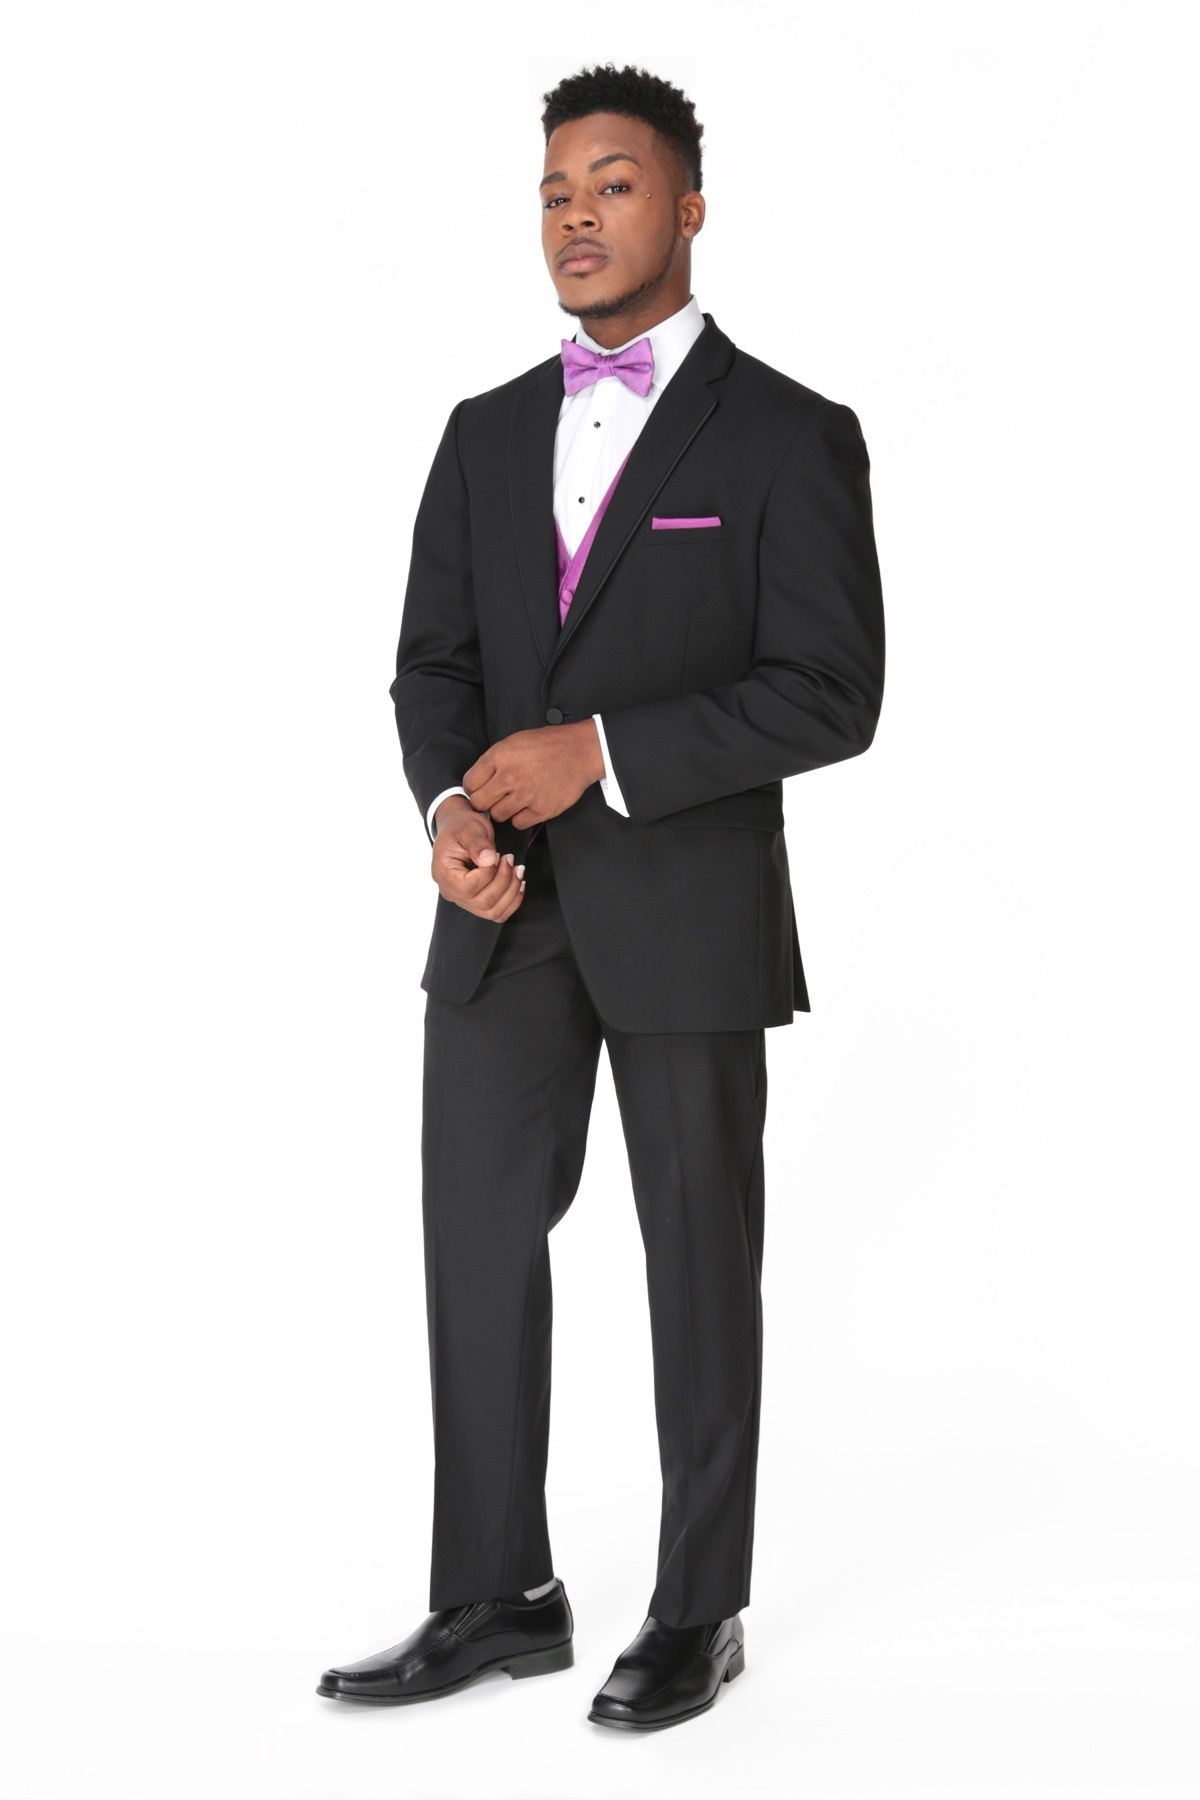 black single men in milroy Quickfacts west virginia quickfacts provides statistics for all states and counties, and for cities and towns with a population of 5,000 or more.